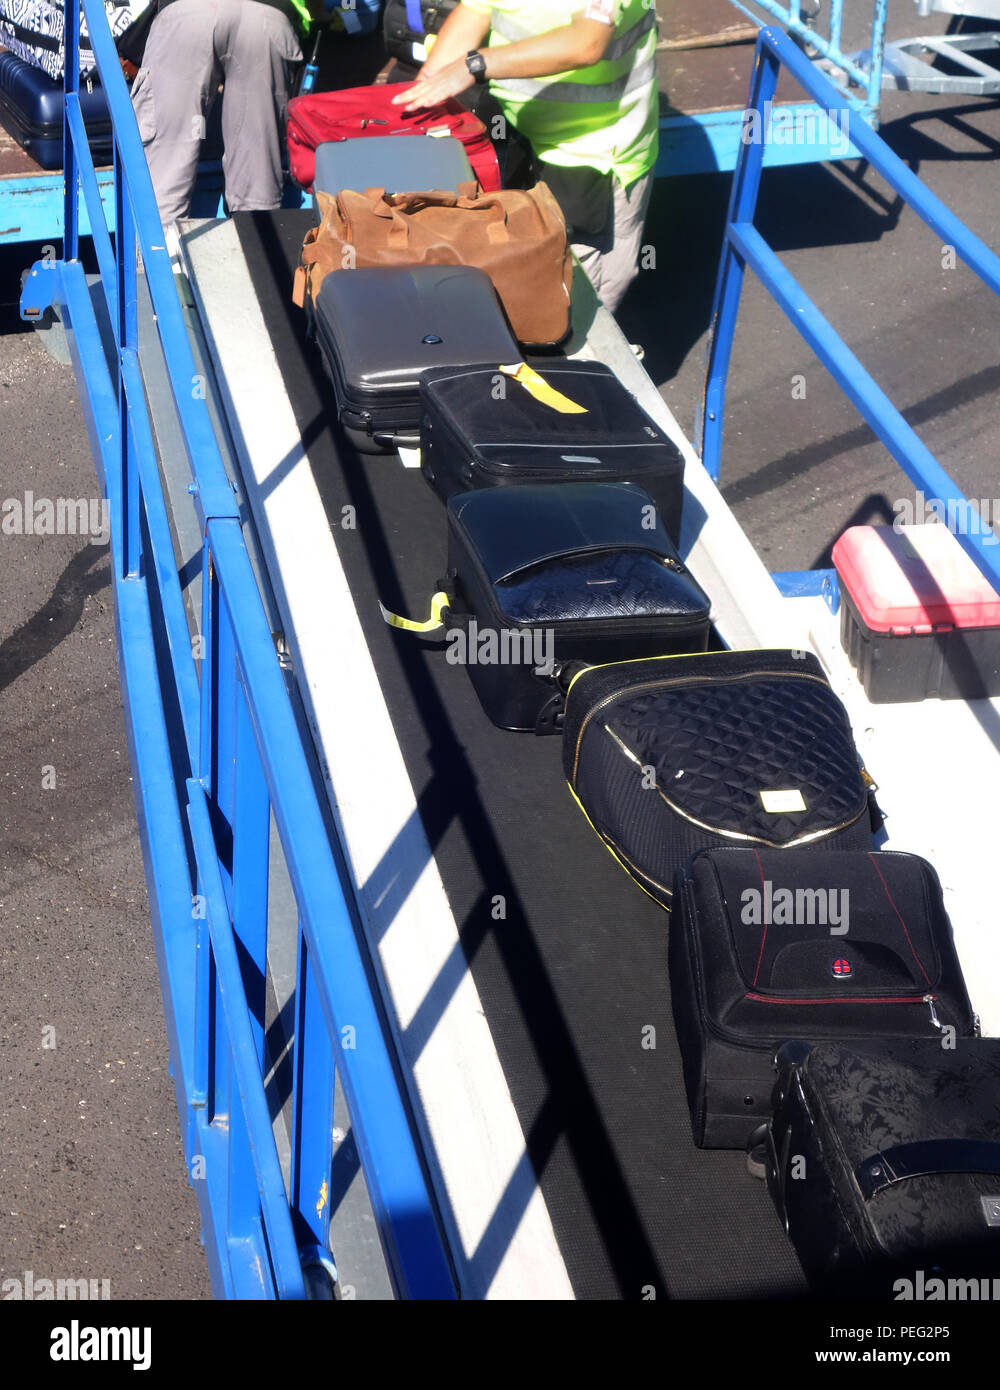 Baggage being put on a conveyor into a plane at Beziers Cap d'Agde Airport, France - Stock Image